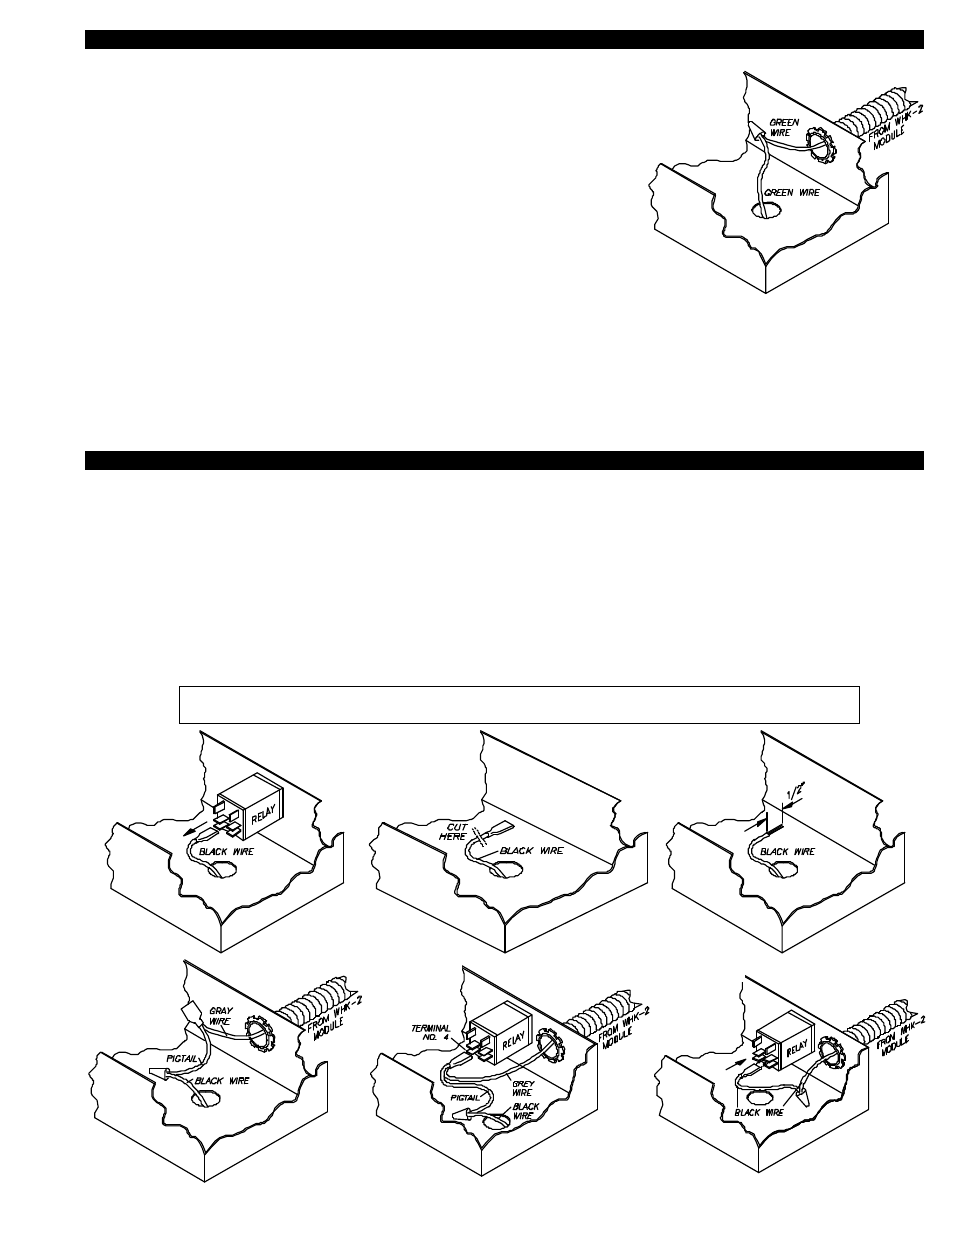 medium resolution of tjernlund whk 2 millivolt interlock kit discontinued not compatible with uc1 8504026 rev 8 09 98 user manual page 6 15